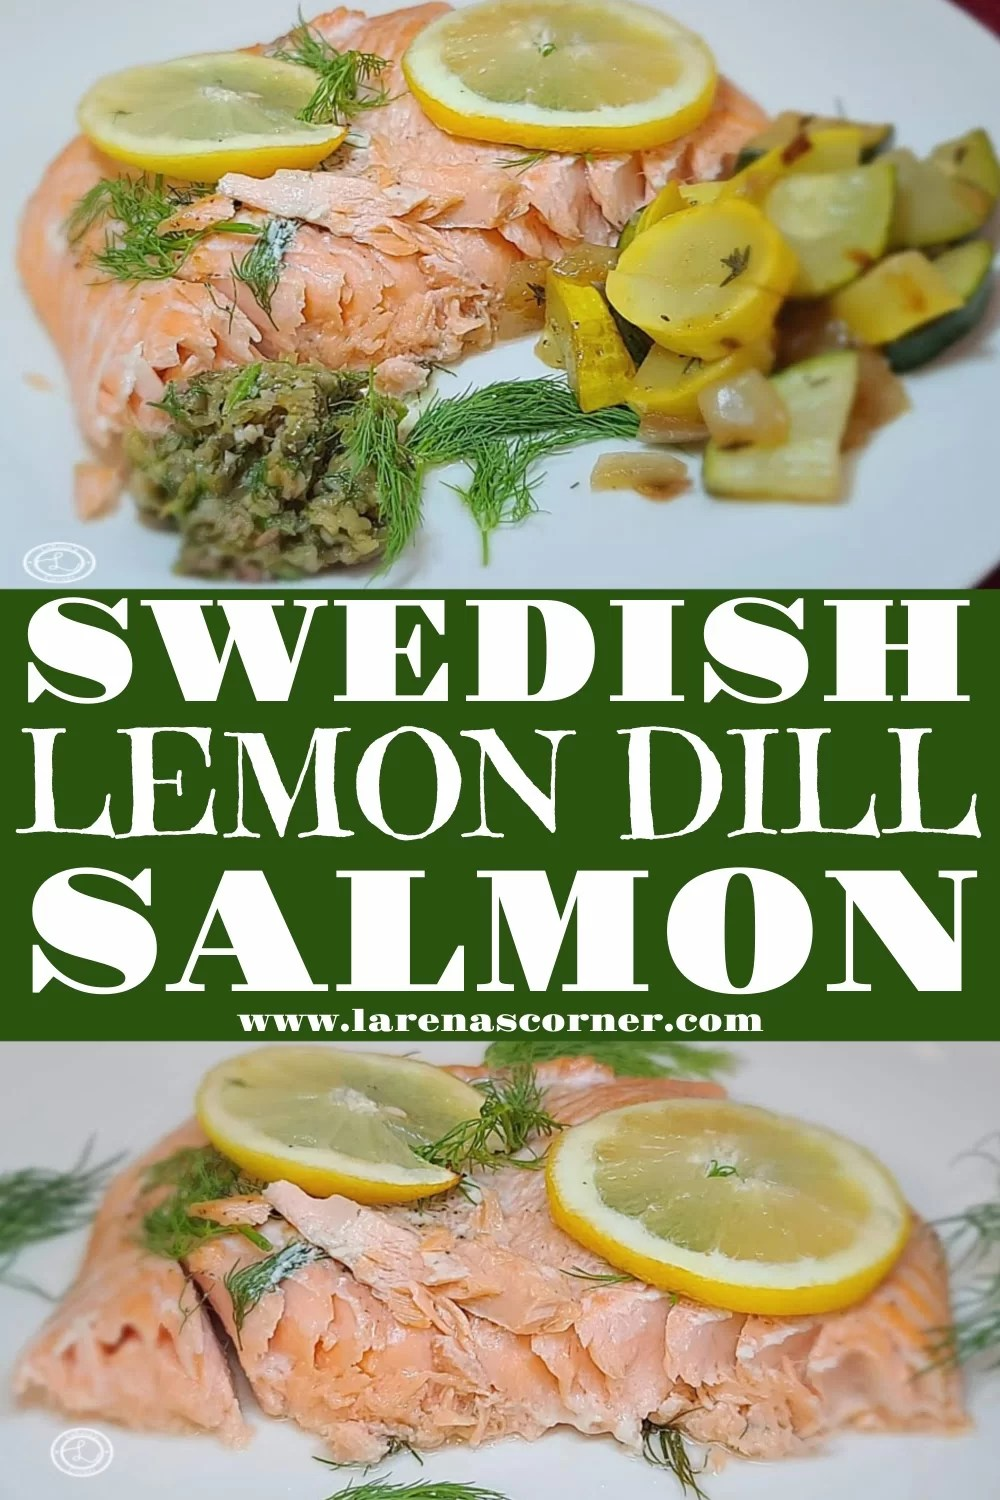 Lemon Dill Salmon. 2 pictures of the salmon on plates.